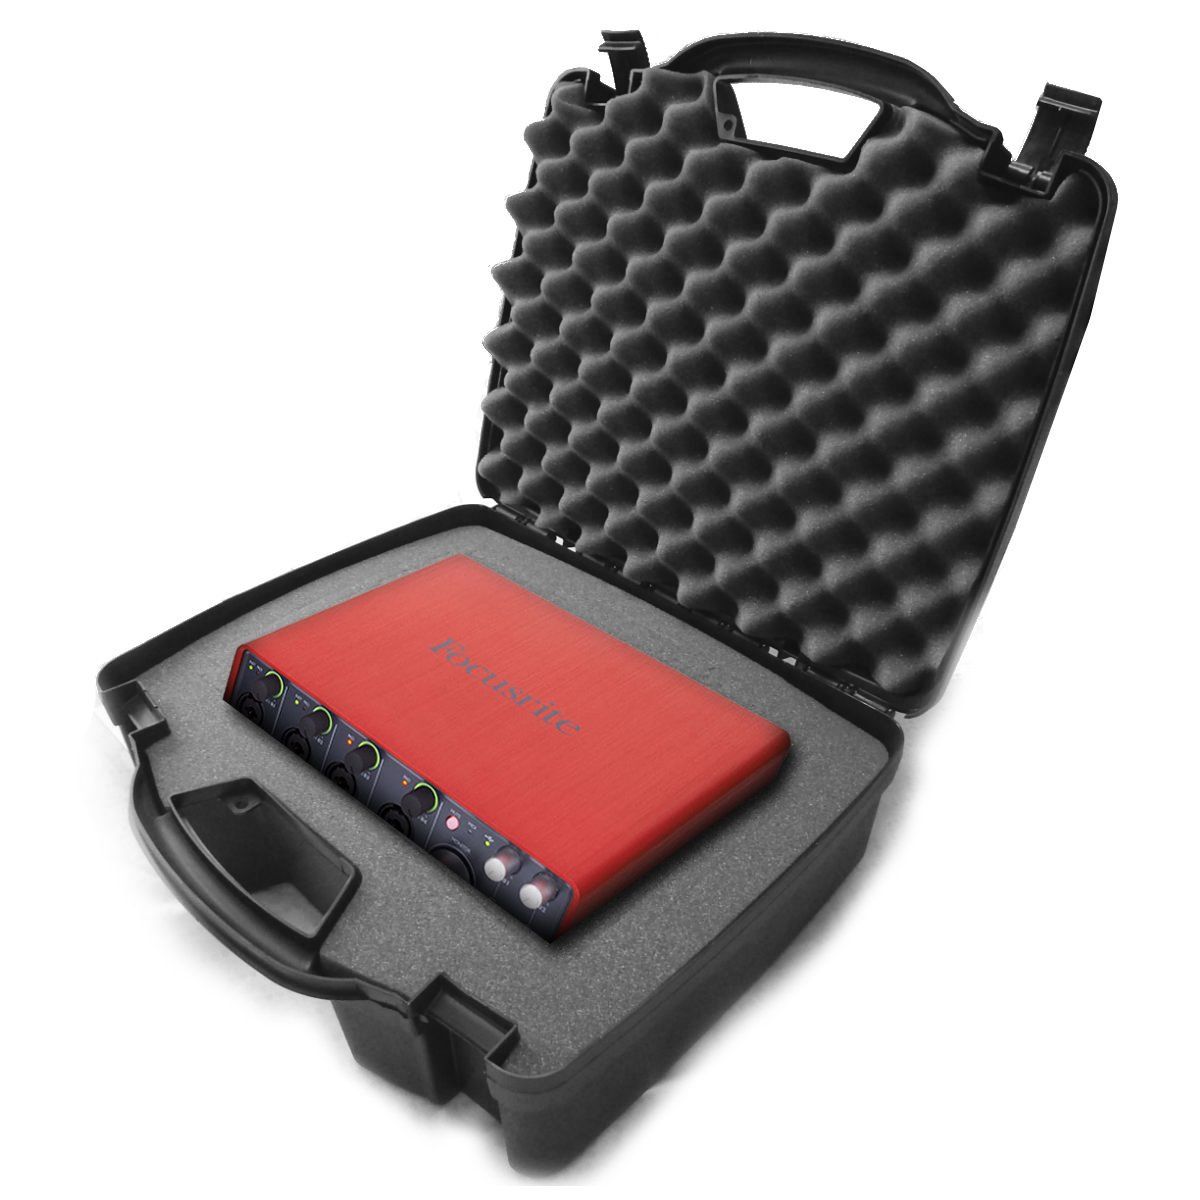 STUDIOCASE Protective Carrying Travel Hard Case with Dense foam - fits Studio USB Desktop Stereo Recorders Focusrite Scarlett 2i2 , 6i6 , 2i4 , 18i8 , Solo Compact USB Audio Interfaces and Recording Mixer Accessories Dis-2460